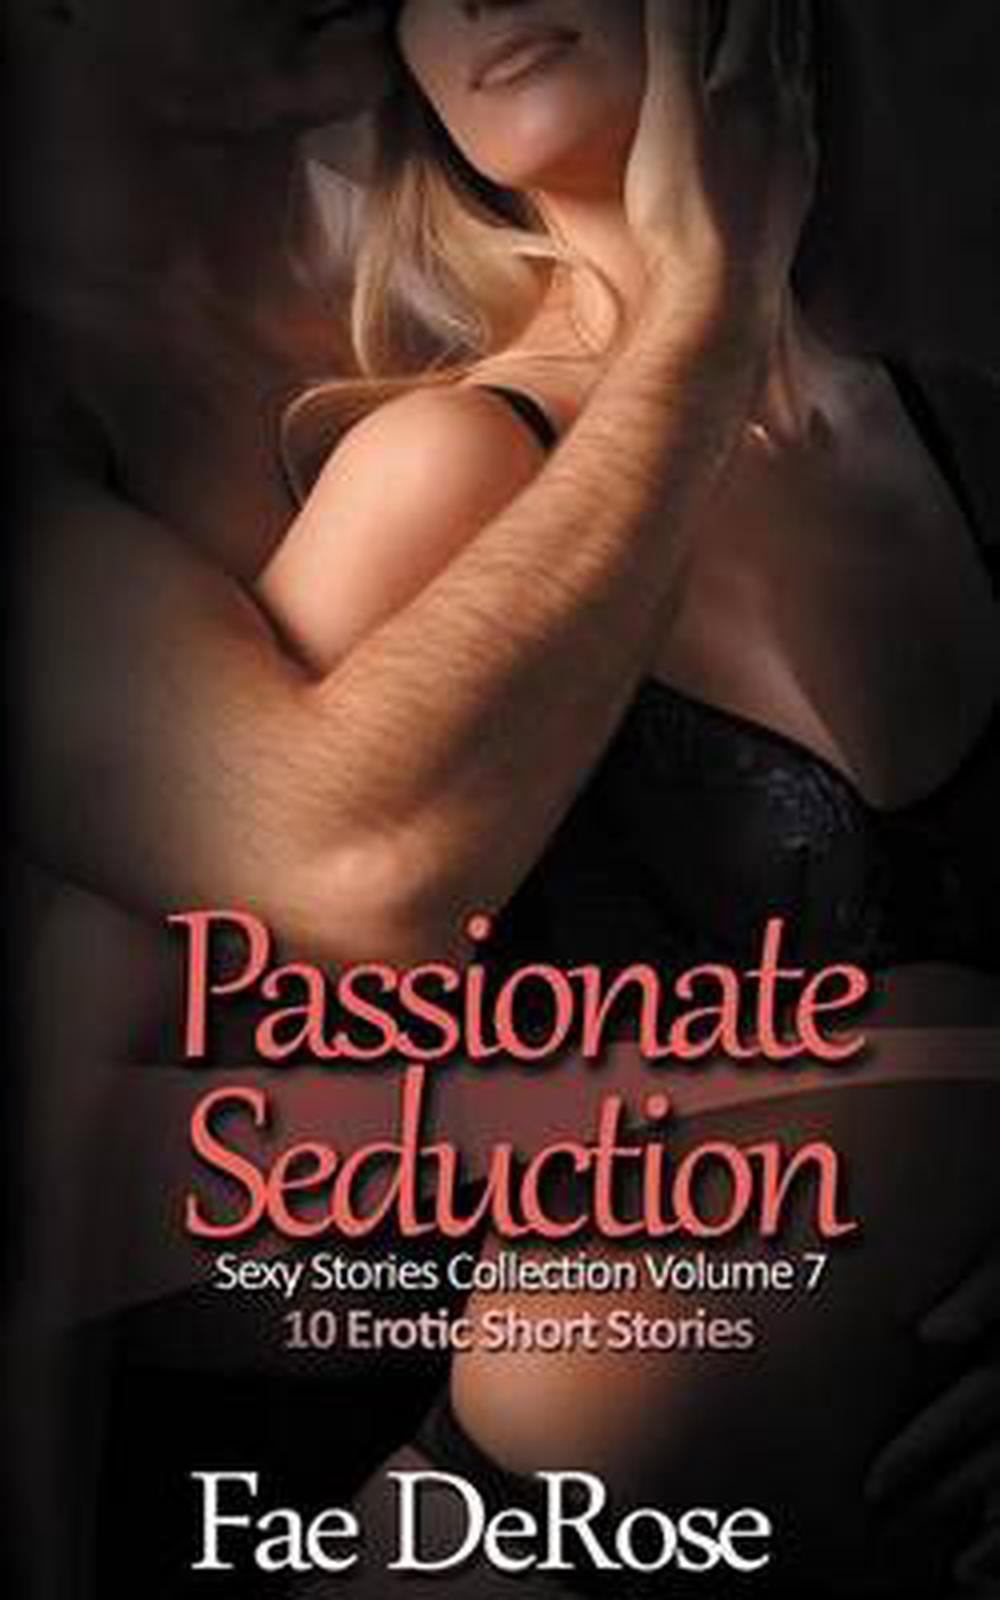 Stories seduction with erotic toys